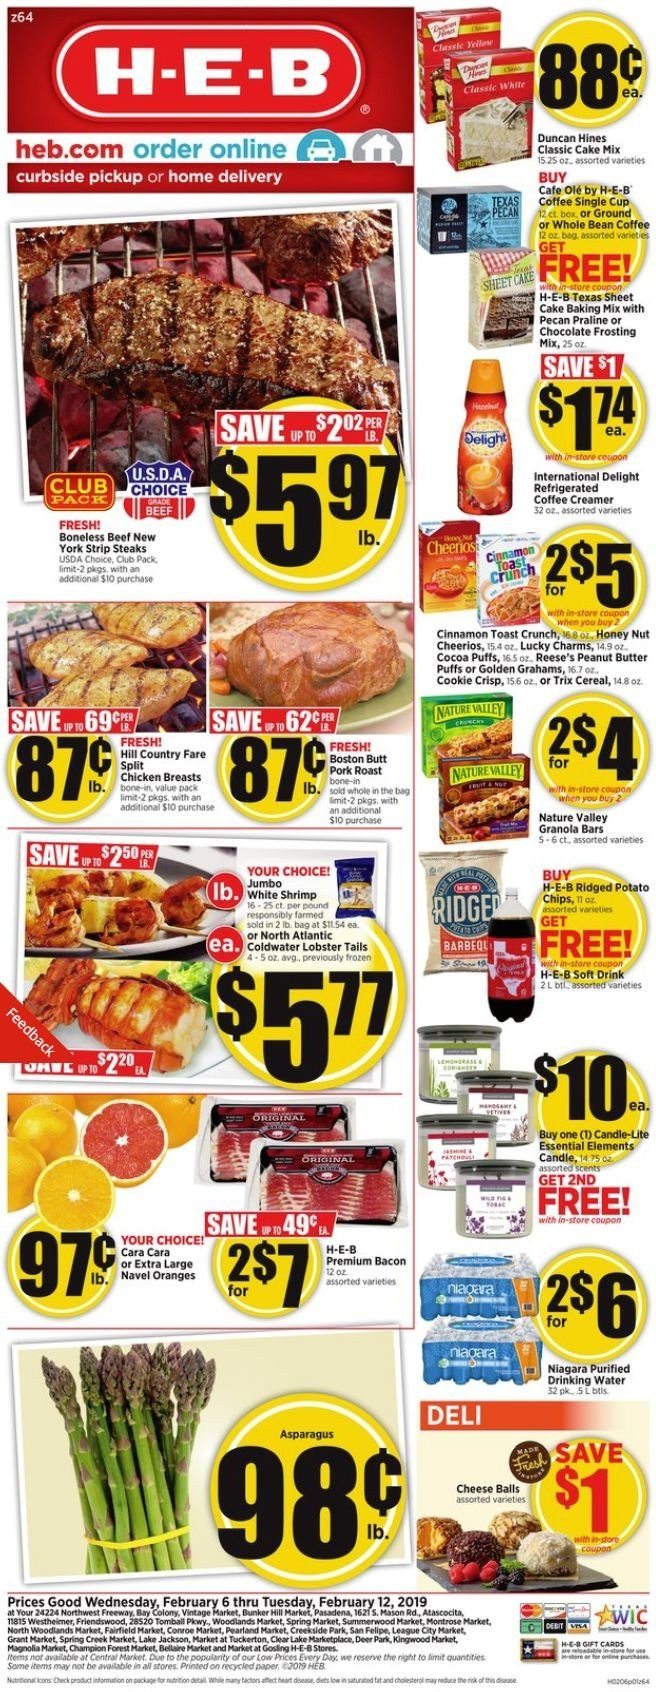 H-E-B Flyer  - 02.06.2019 - 02.12.2019. Page 1.